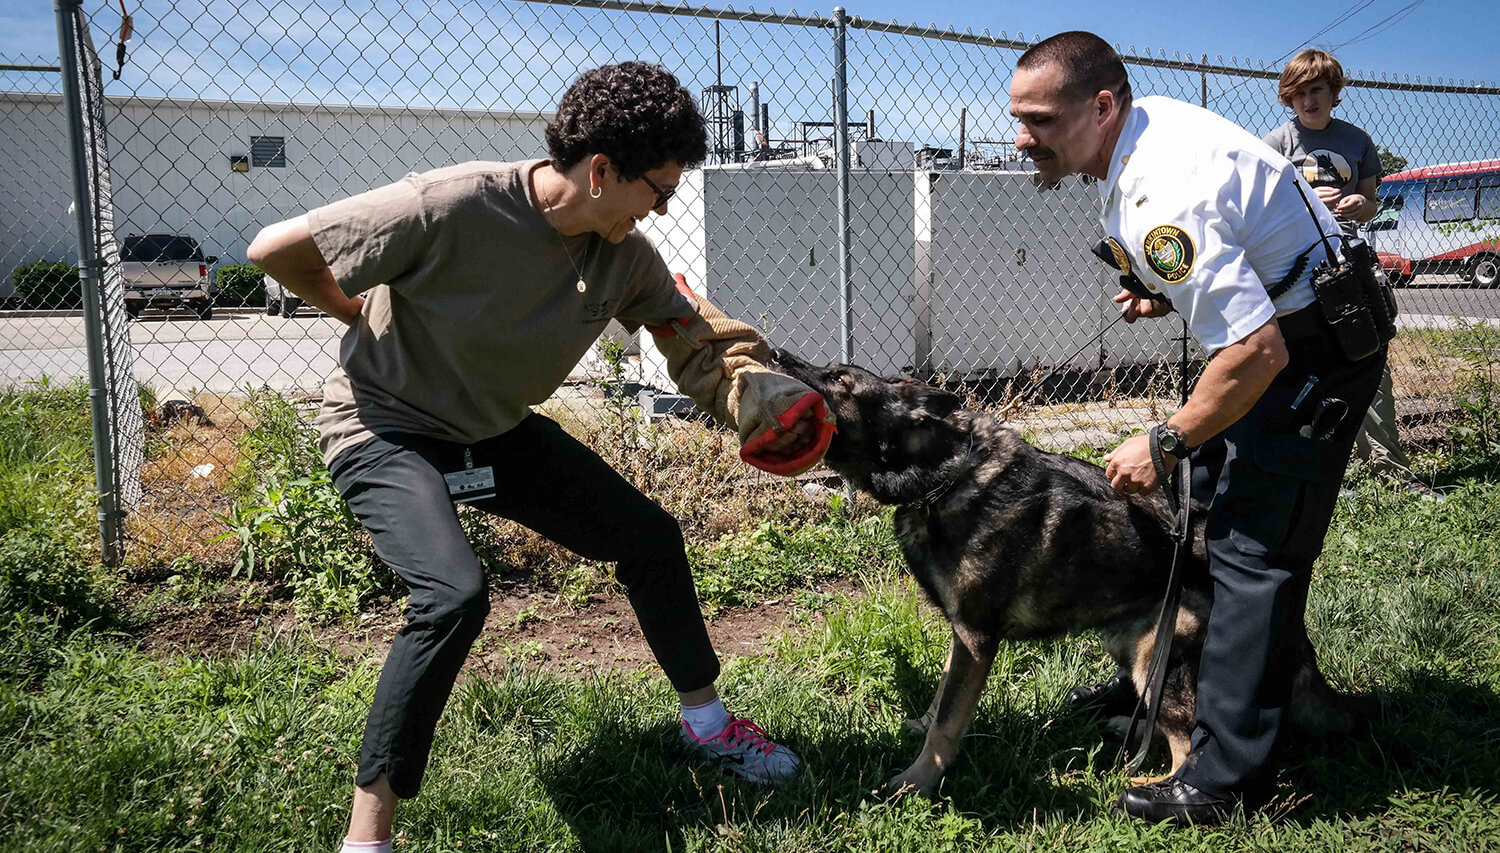 Otto offers an arm to a K9 for some bite work. (Image: Tracy Darling/Superfit Canine)